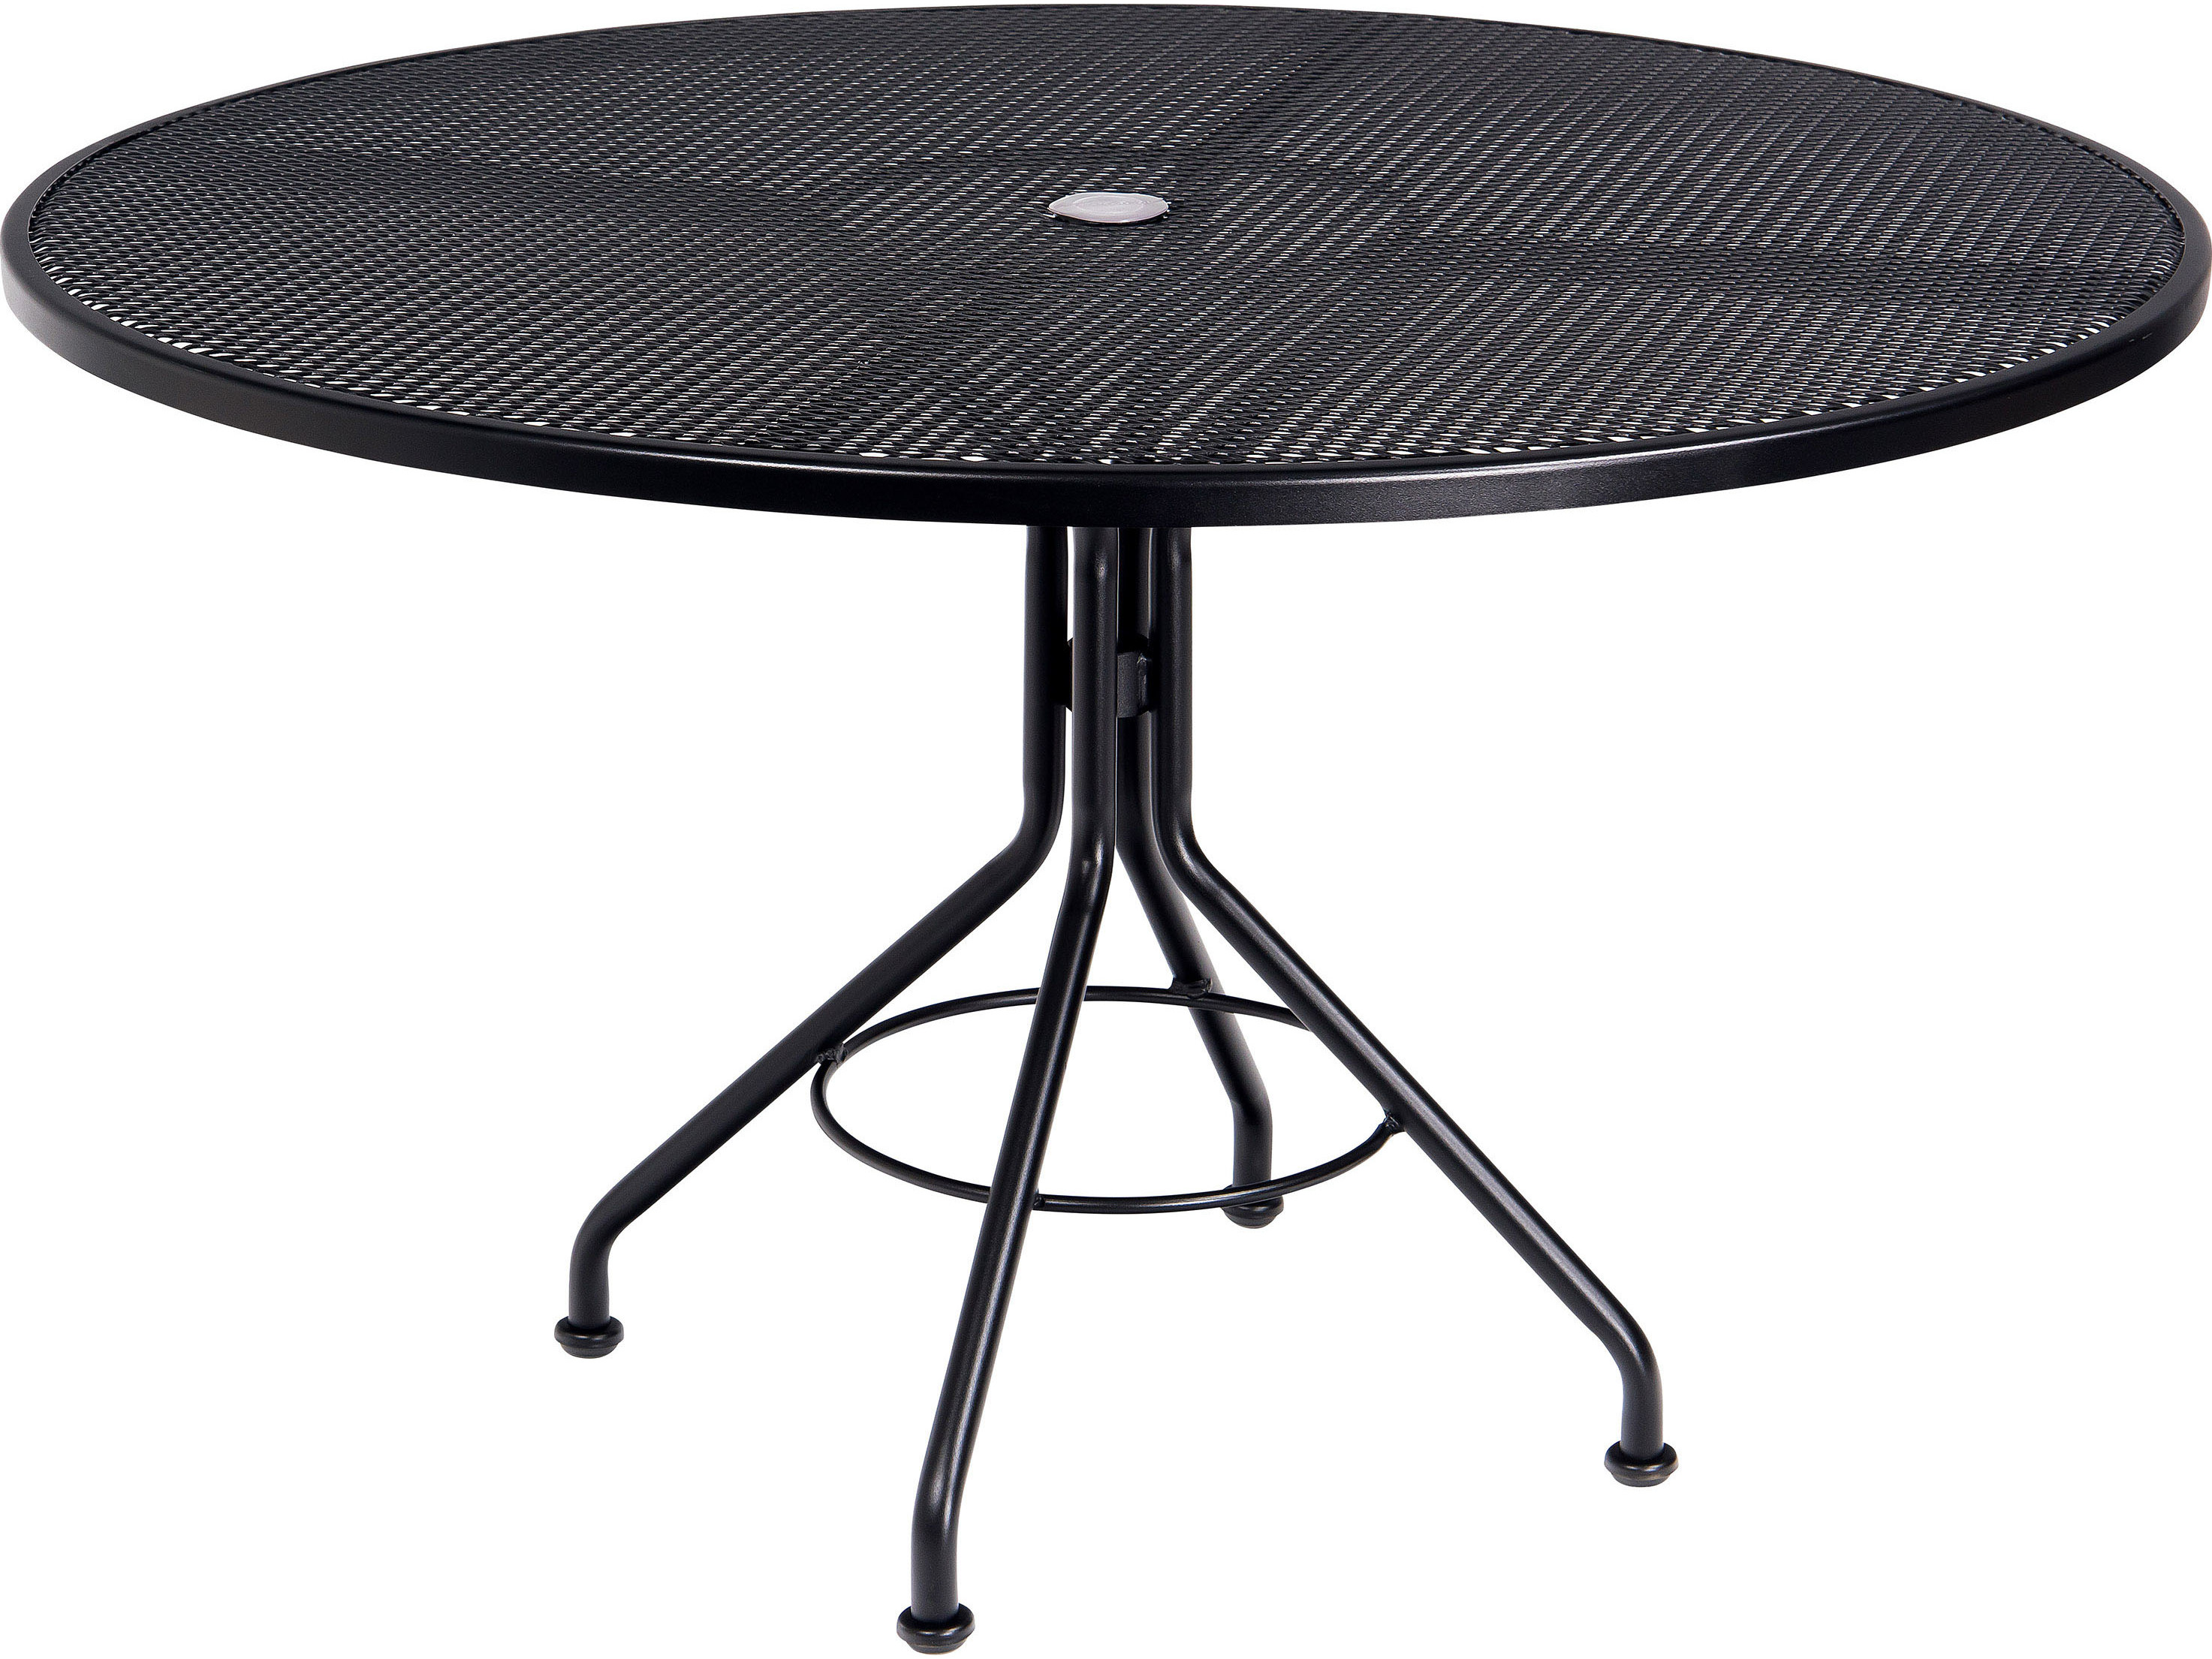 woodard mesh wrought iron round table with umbrella hole patio accent touch zoom retro designer chairs corner furniture futon mattress covers steel and glass side small coffee